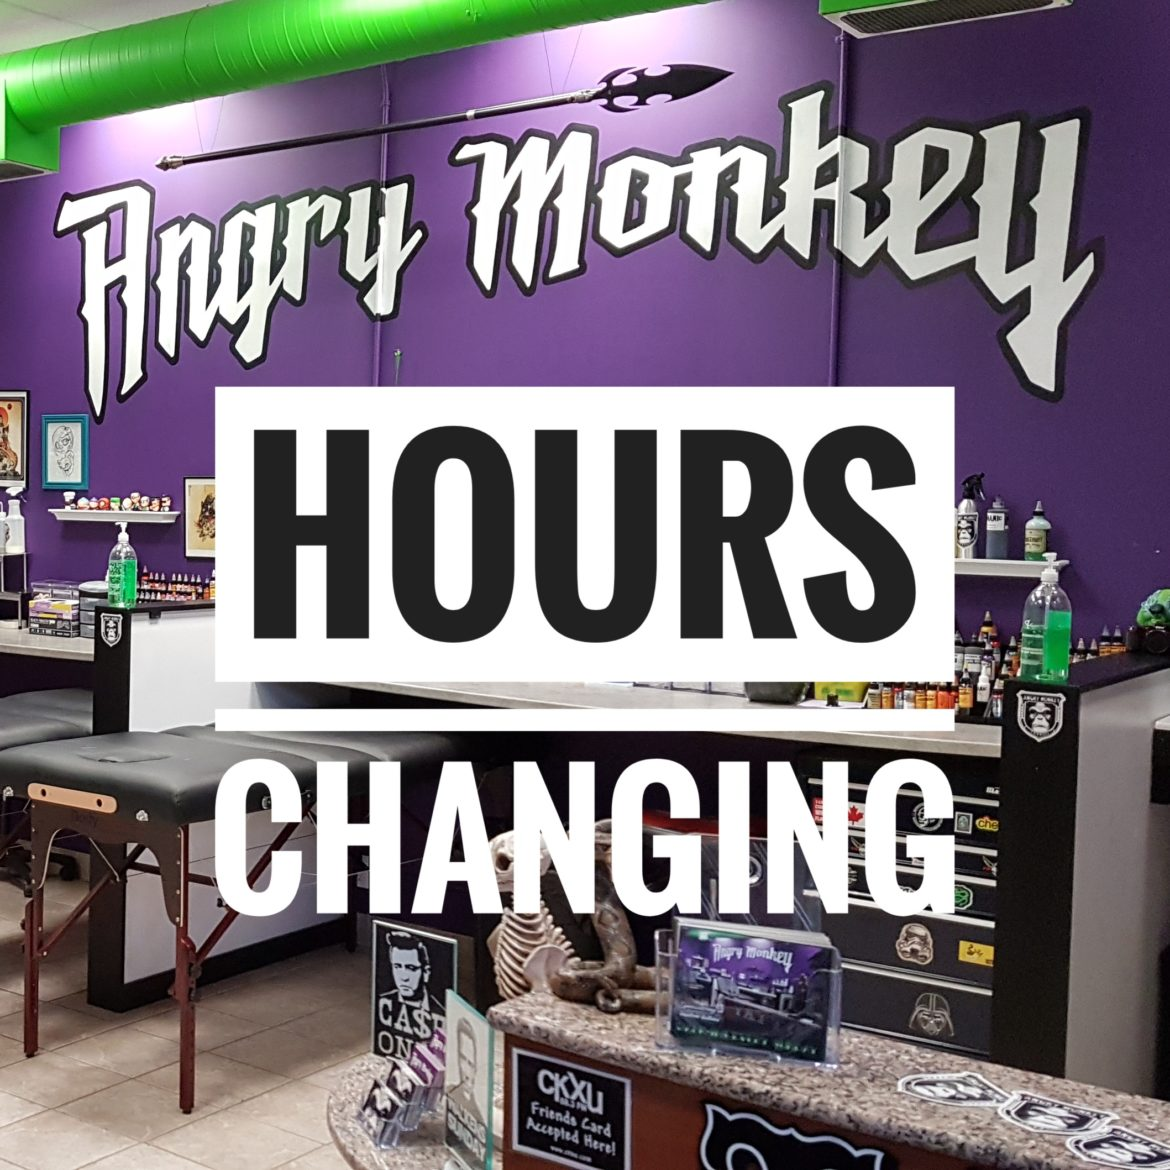 Walk-ins and Hours Changing